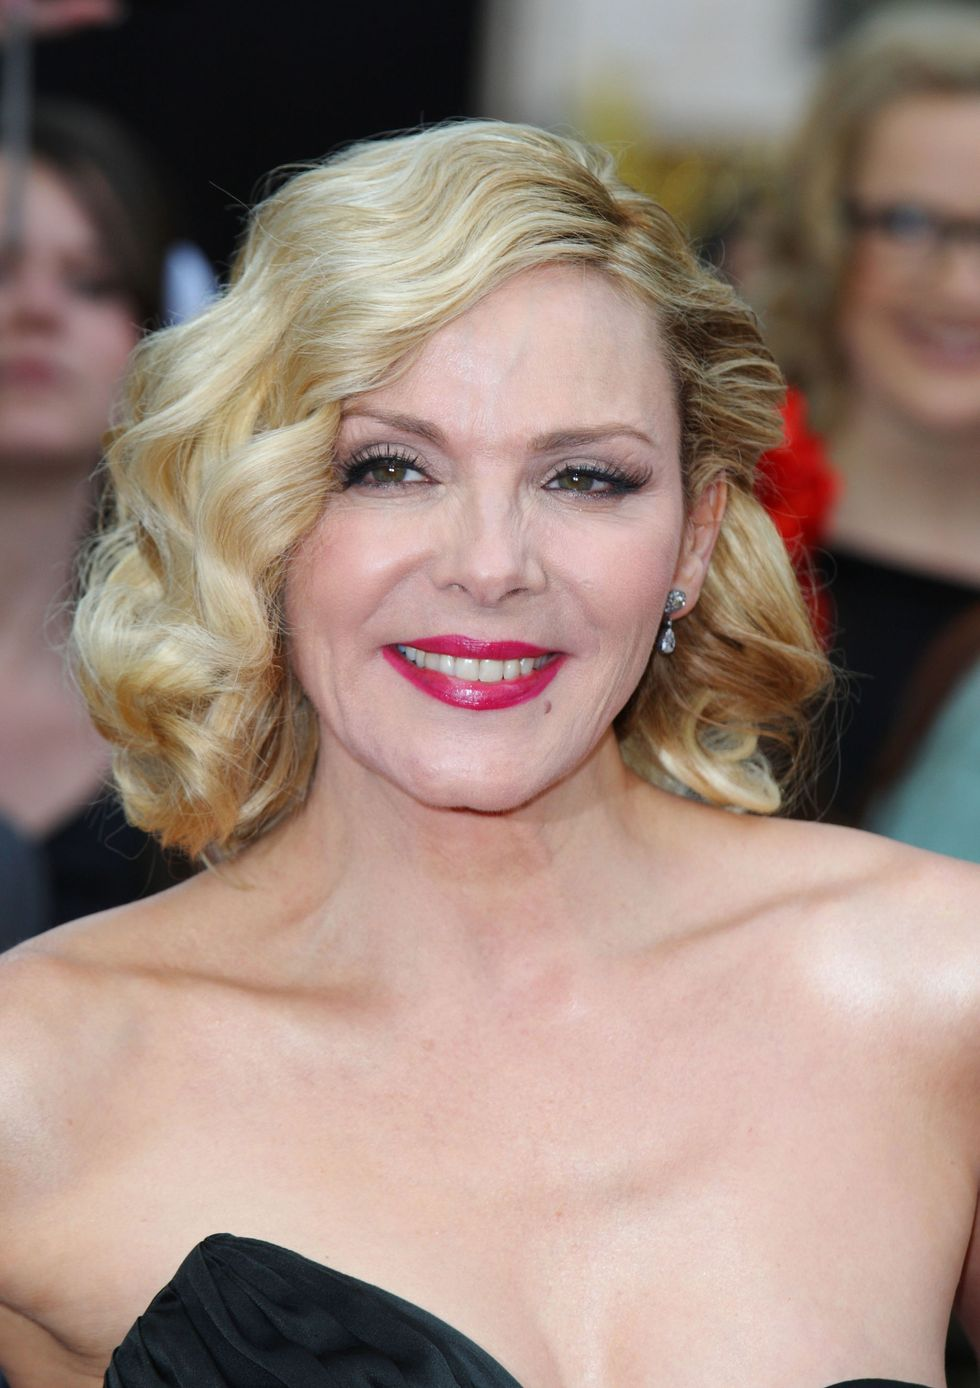 """Kim Cattrall Much like her own character Samantha on Sex and the City, Cattrall is more about freedom than anything else. """"When I was 5, my fantasy was to have a hundred dogs and a hundred kids. I realized that so much of the pressure I was feeling was from outside sources, and I knew I wasn't ready to take that step into motherhood. Being a biological mother just isn't part of my experience this time around,"""" she openly shared to the March 2003 issue of O, The Oprah Magazine ."""